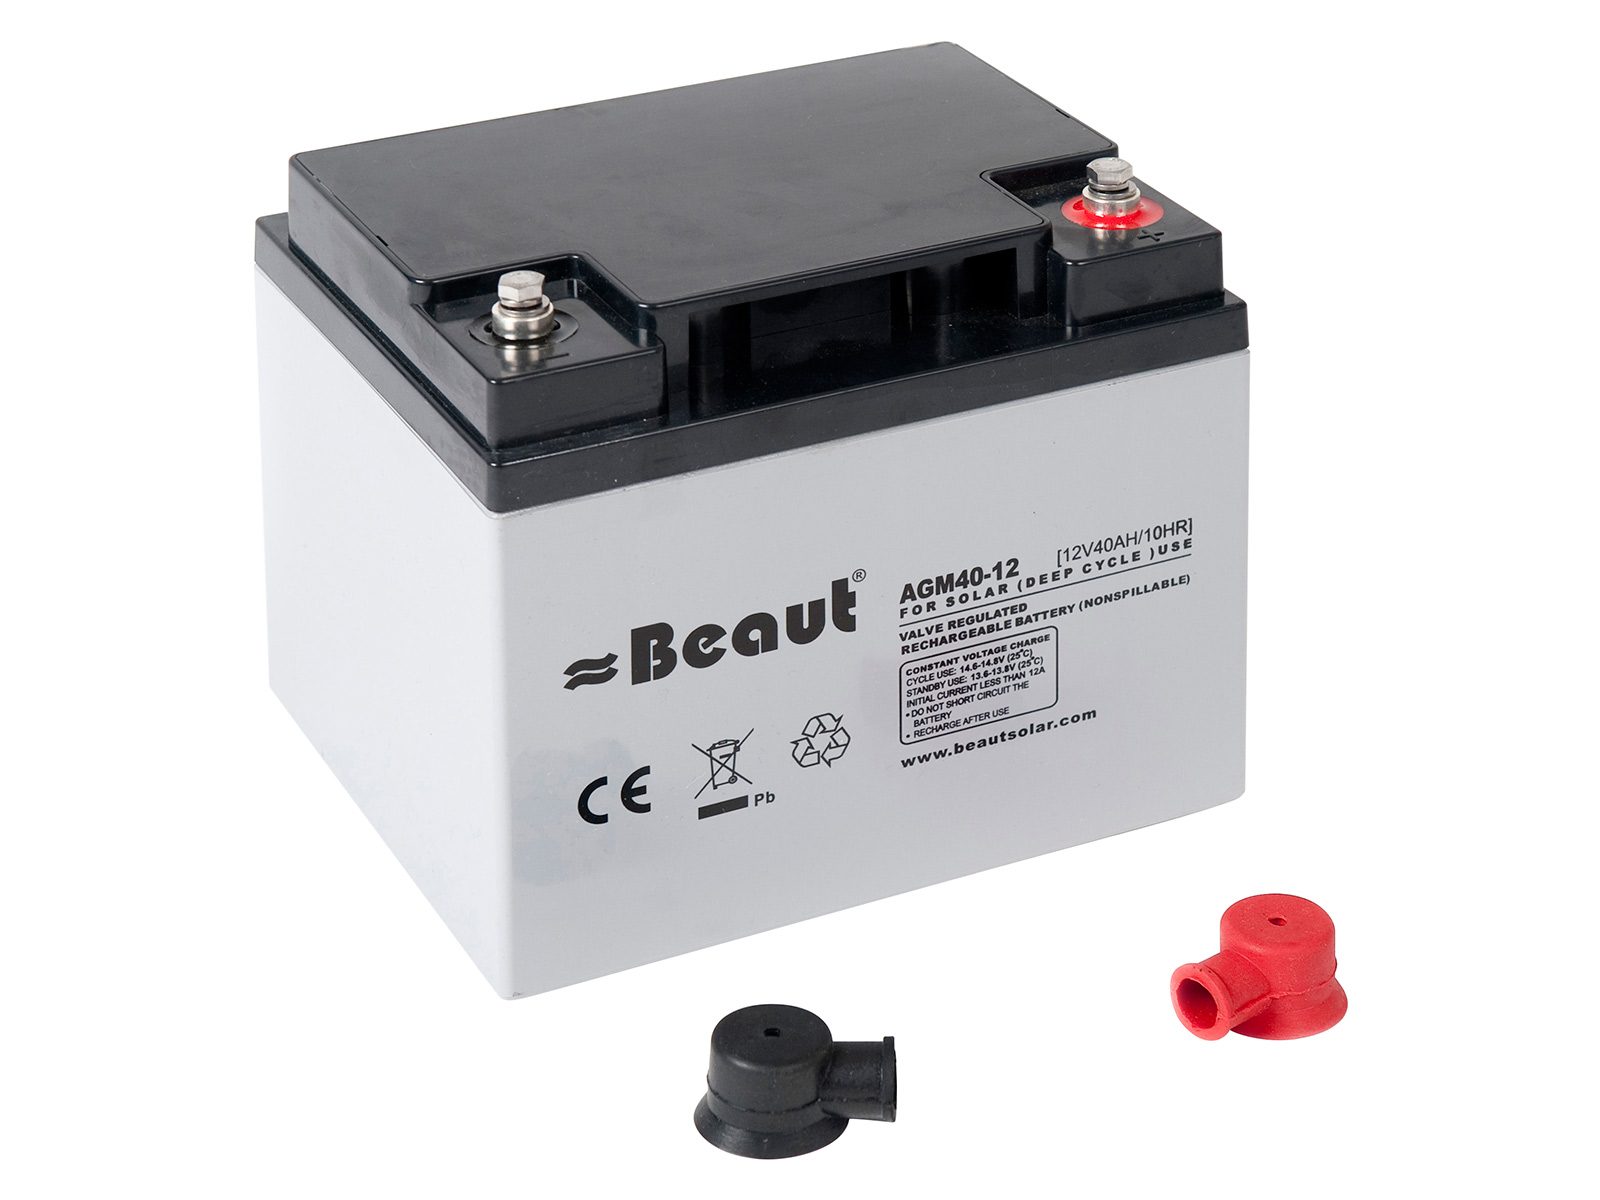 Solar Batterie Beaut 40 A 12 Volt AGM 198 x 166 x 171 mm